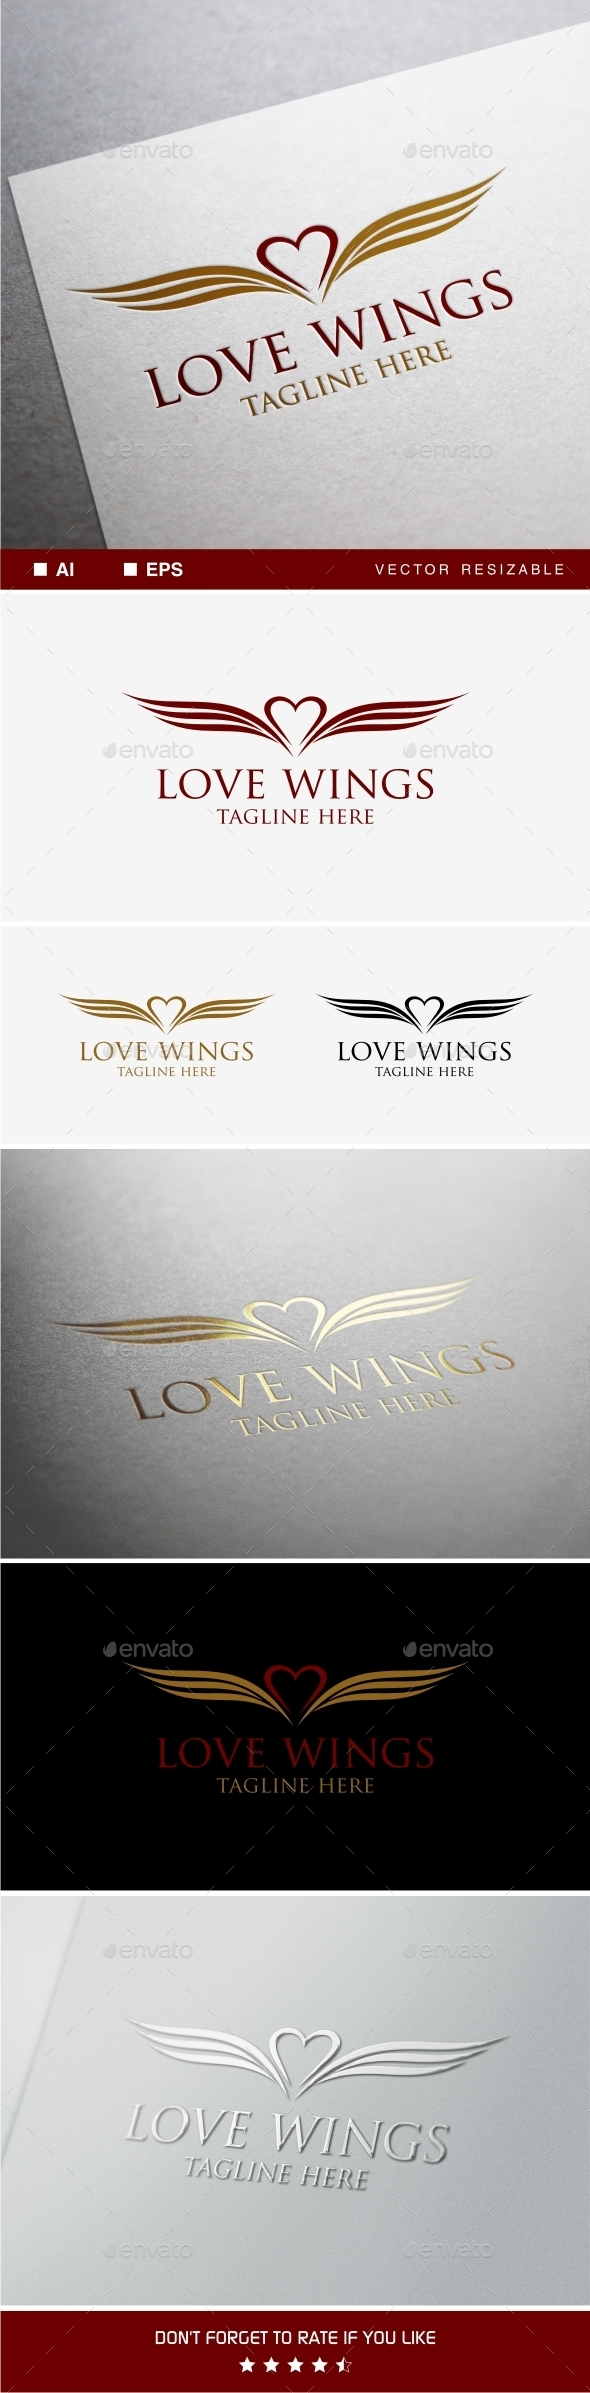 Love Wings Logo Template - Crests Logo Templates